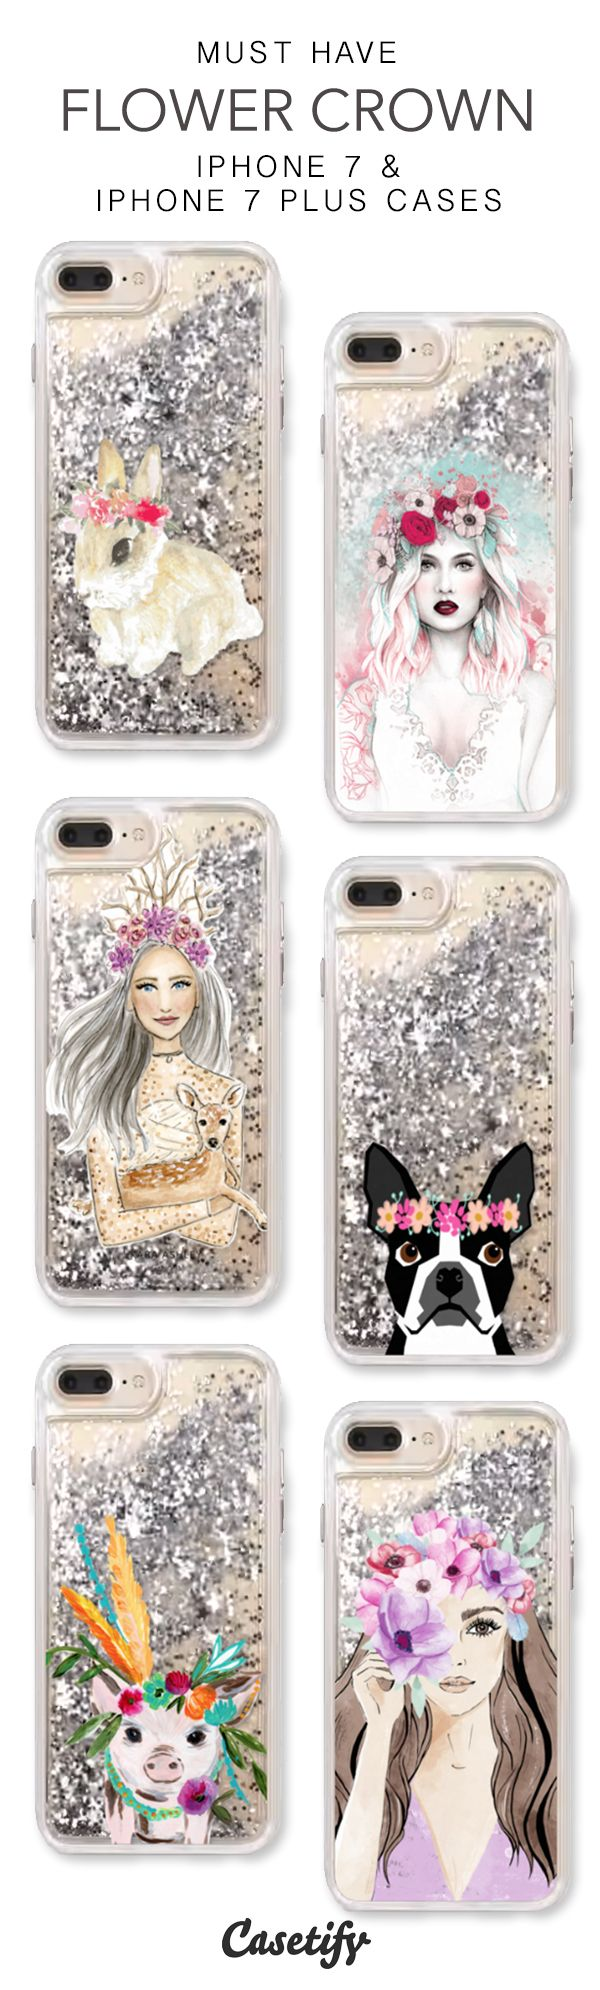 Must Have Flower Crown iPhone 7 Cases & iPhone 7 Plus Cases. More protective liquid glitter floral iPhone case here > https://www.casetify.com/en_US/collections/iphone-7-glitter-cases#/?vc=Rr0faYDjix